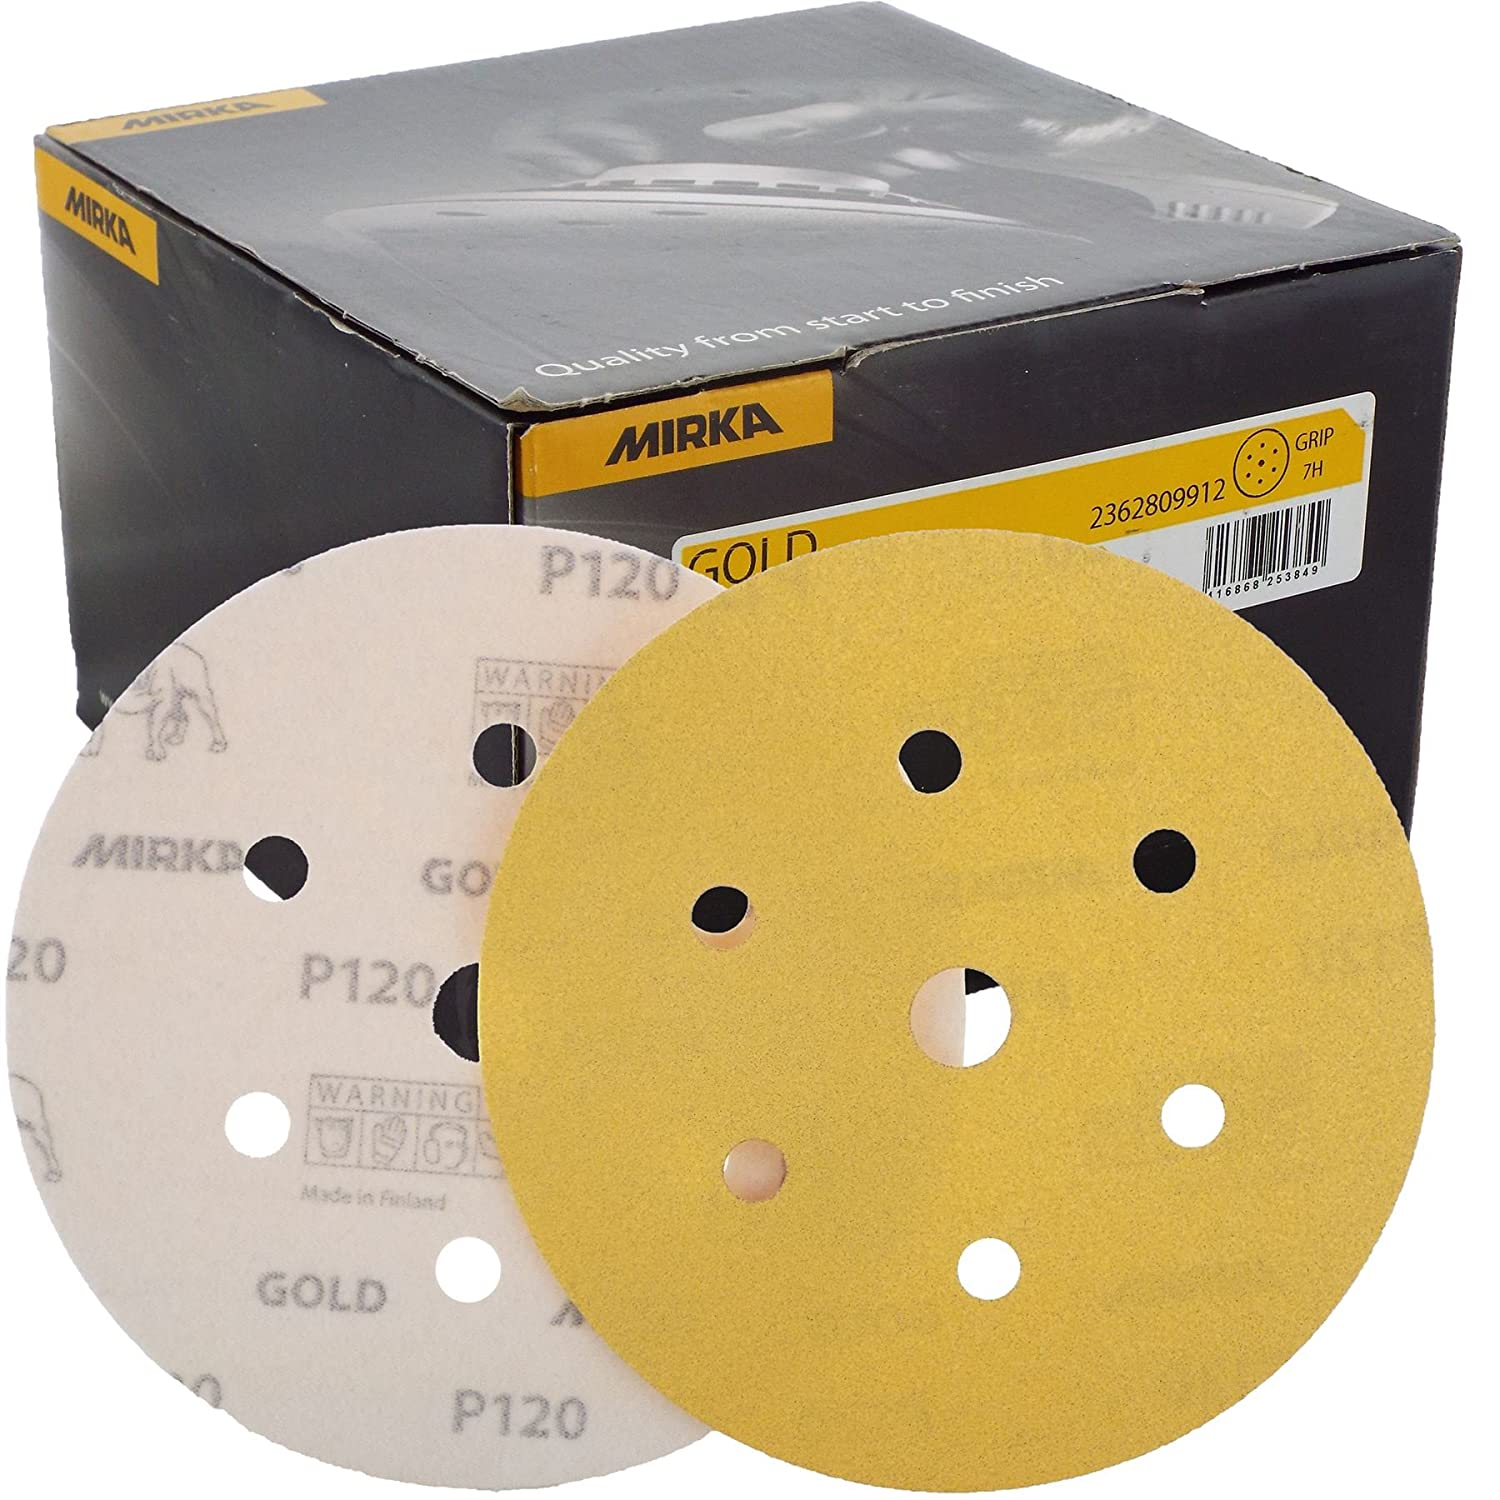 Mirka Gold Hook-It DA Sanding Discs Ø 150mm 6' 120 Grit 6+1 Hole Sander Pads Suited for sanding at high speed and are classed as a highly durable product.